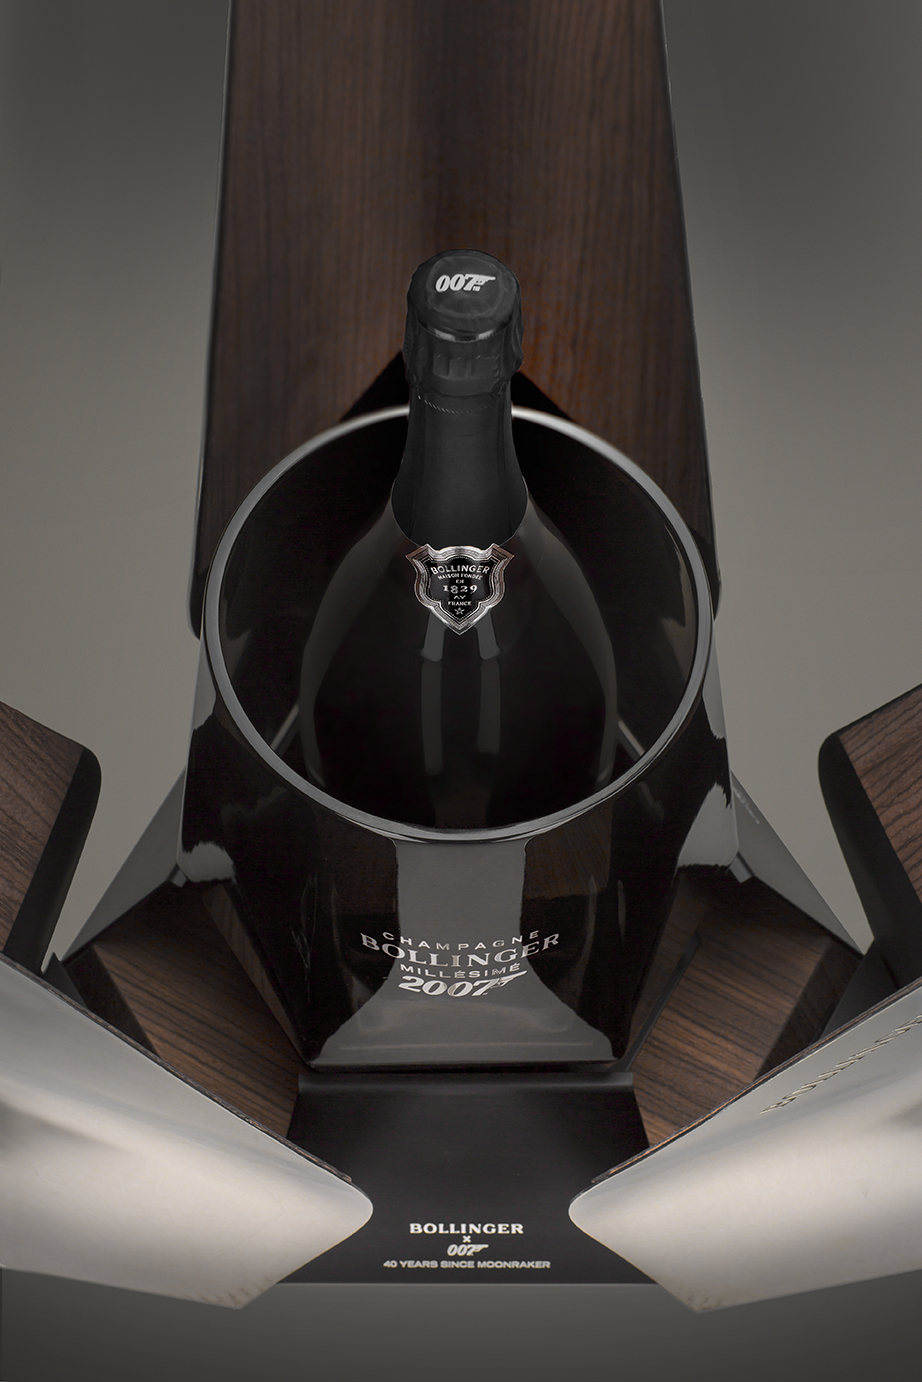 BOLLINGER_Moonraker-007_DESIGN-PRODUIT_Spiritueux-Champagne-James-Bond-Crystalerie-Saint-Louis-Anniversaire-40-ansPLANET-DESIGN-PARIS-Eric-Berthes_06.jpg